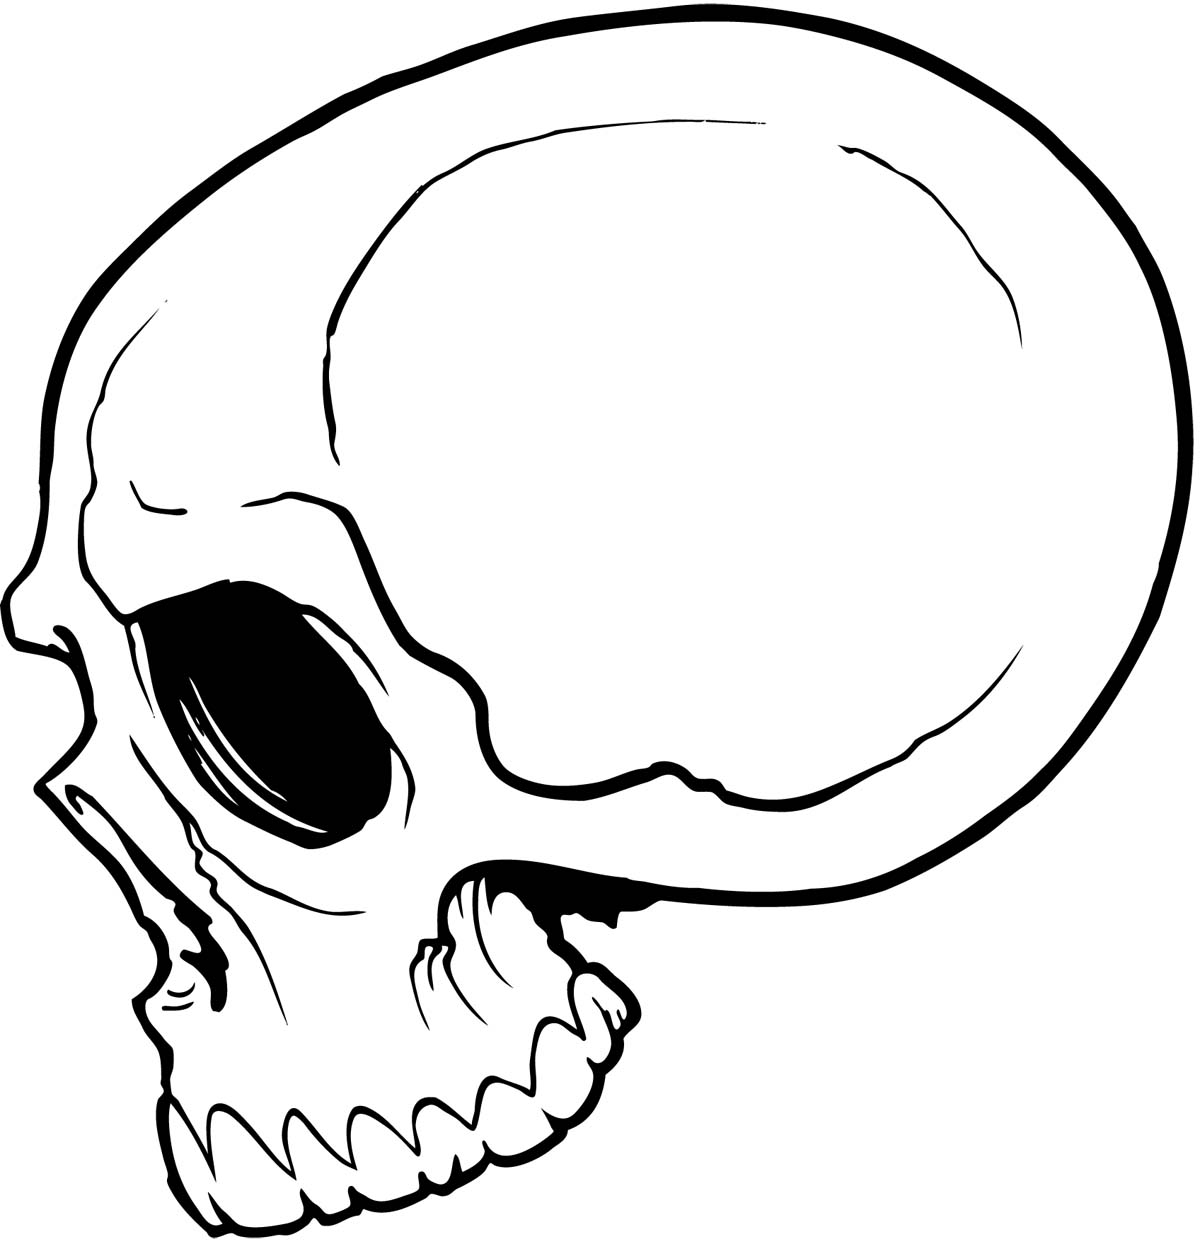 Line Drawing Artist Research : Skull line art cliparts